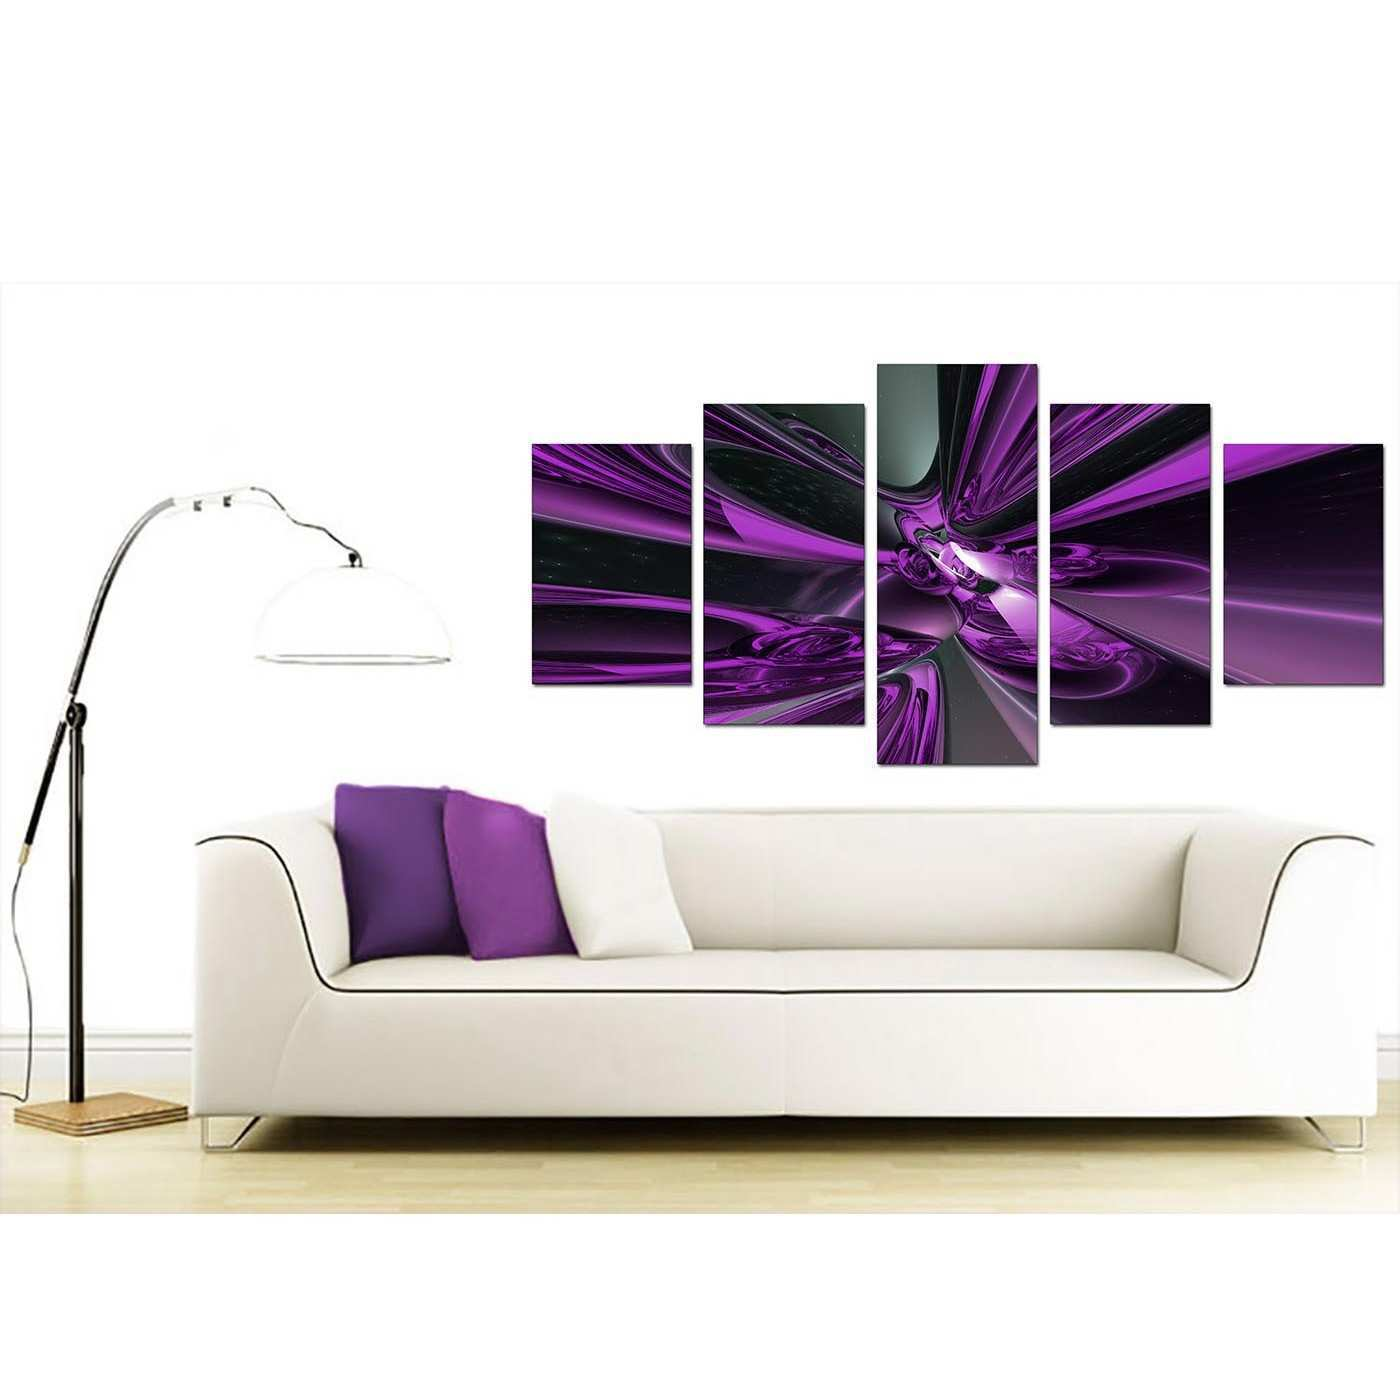 Extra Purple Abstract Canvas Prints UK 5 Piece